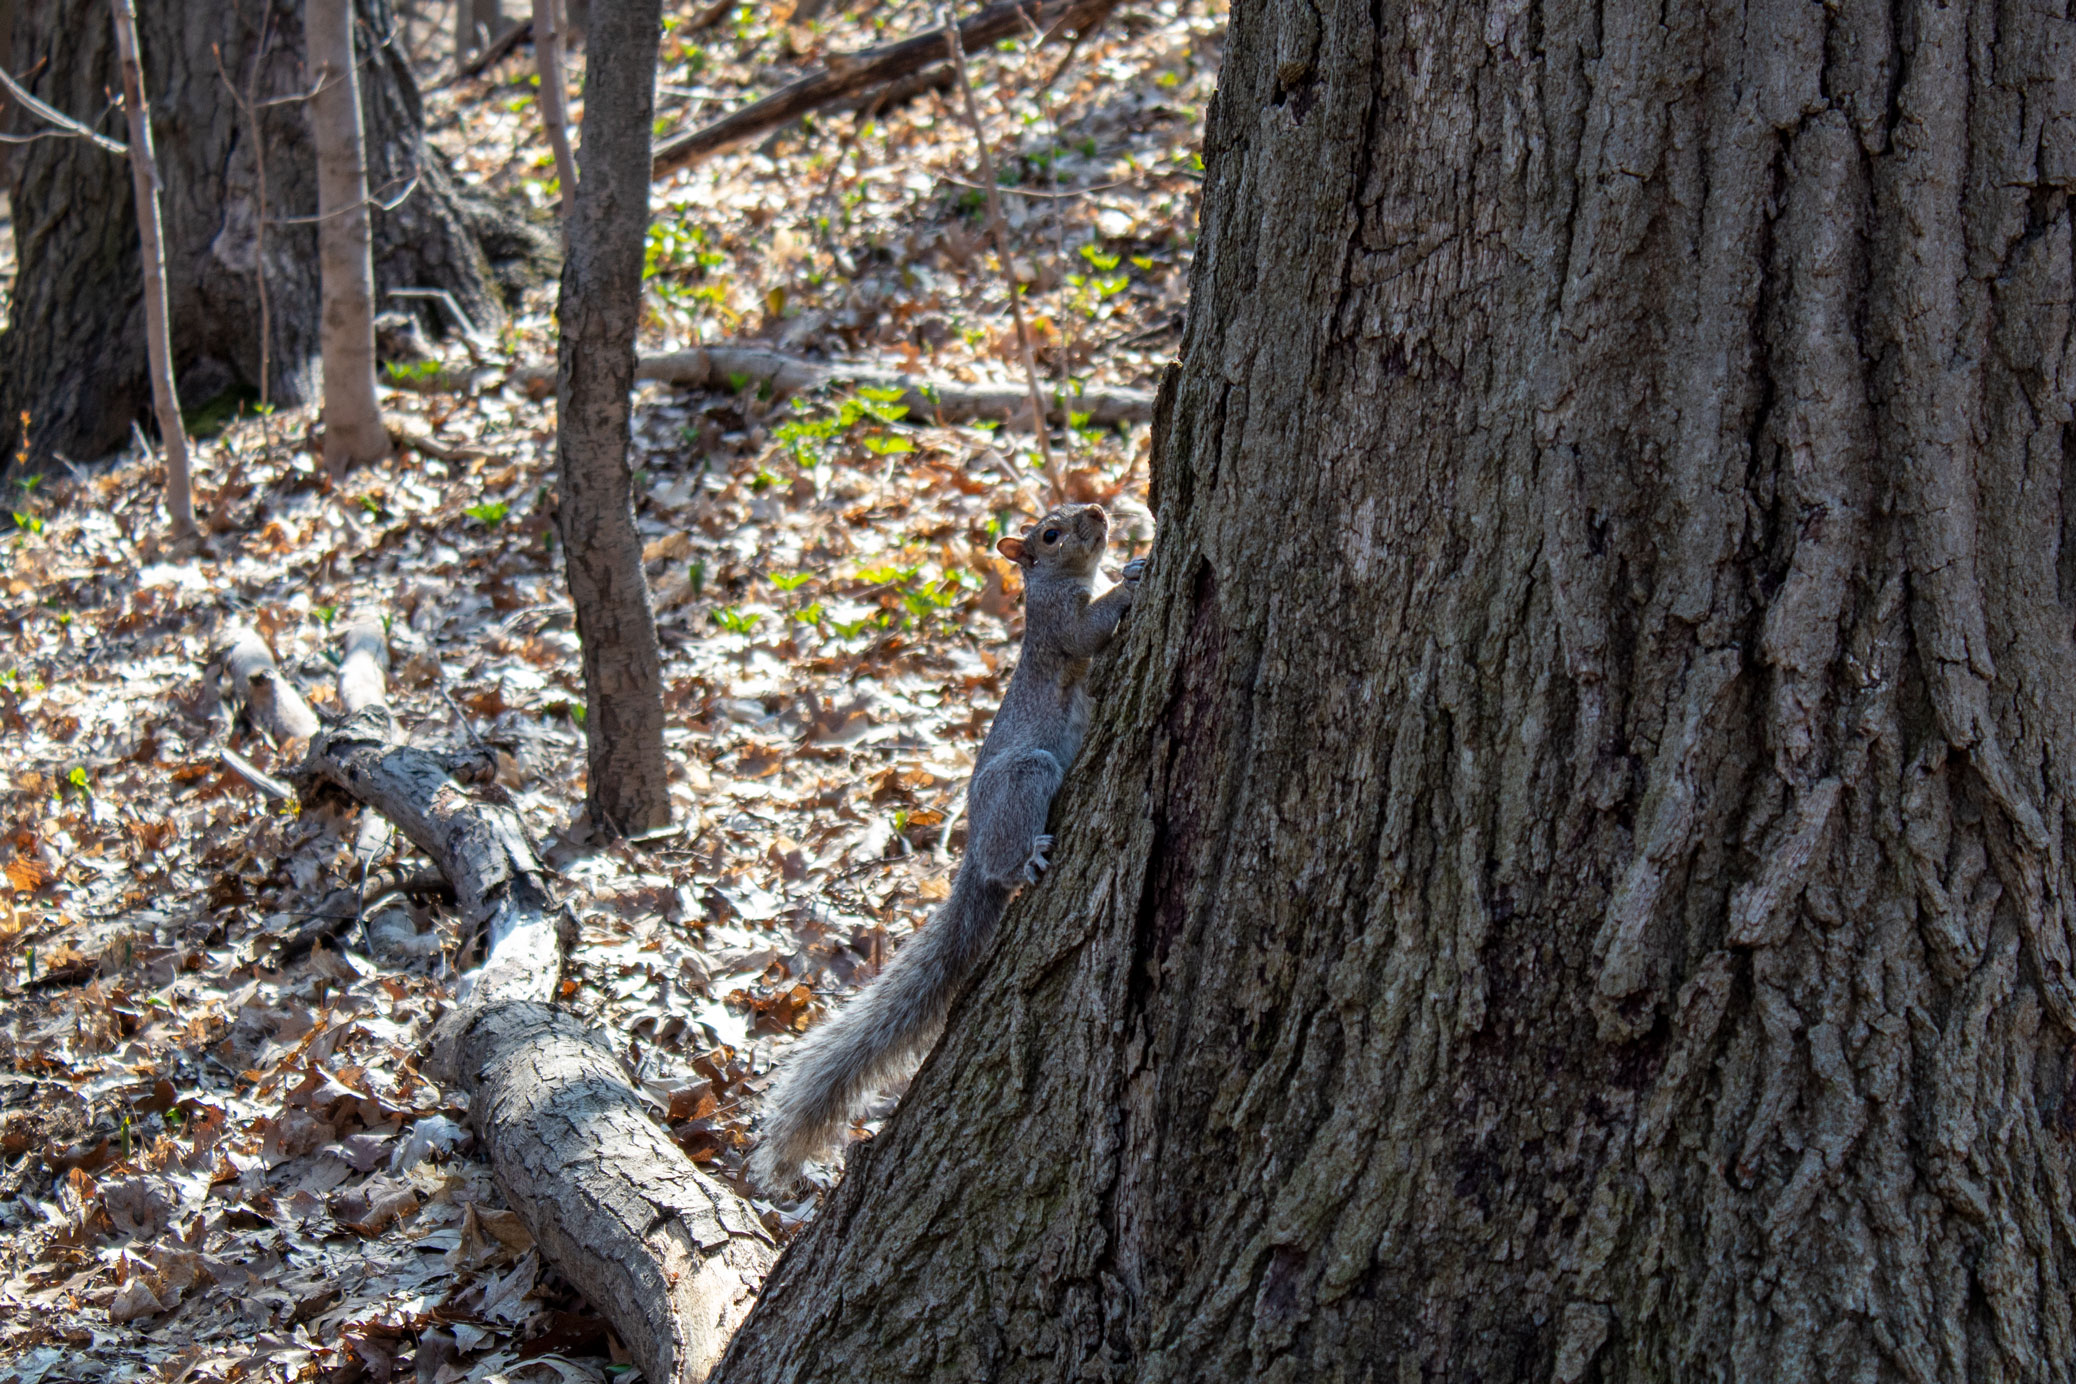 Squirrel clinging to the side of a tree in the woods